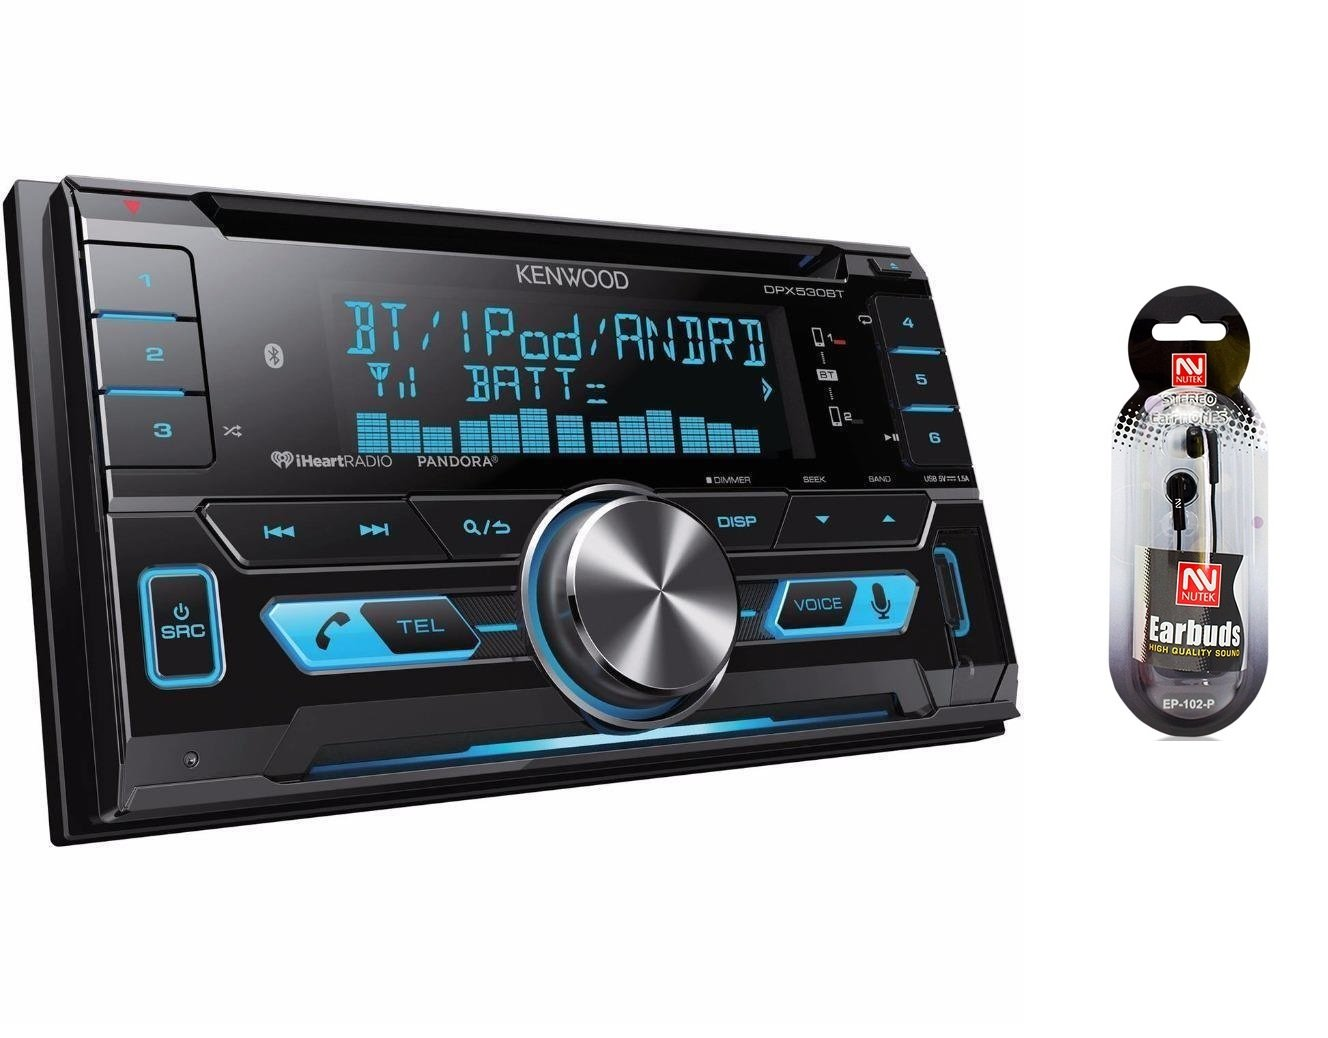 Amazon.com: Kenwood DPX530BT/NUTEK EARBUDS Double-DIN In-Dash CD/MP3/USB  Bluetooth AM/FM Car Stereo Receiver High Resolution Audio Compatibility ...